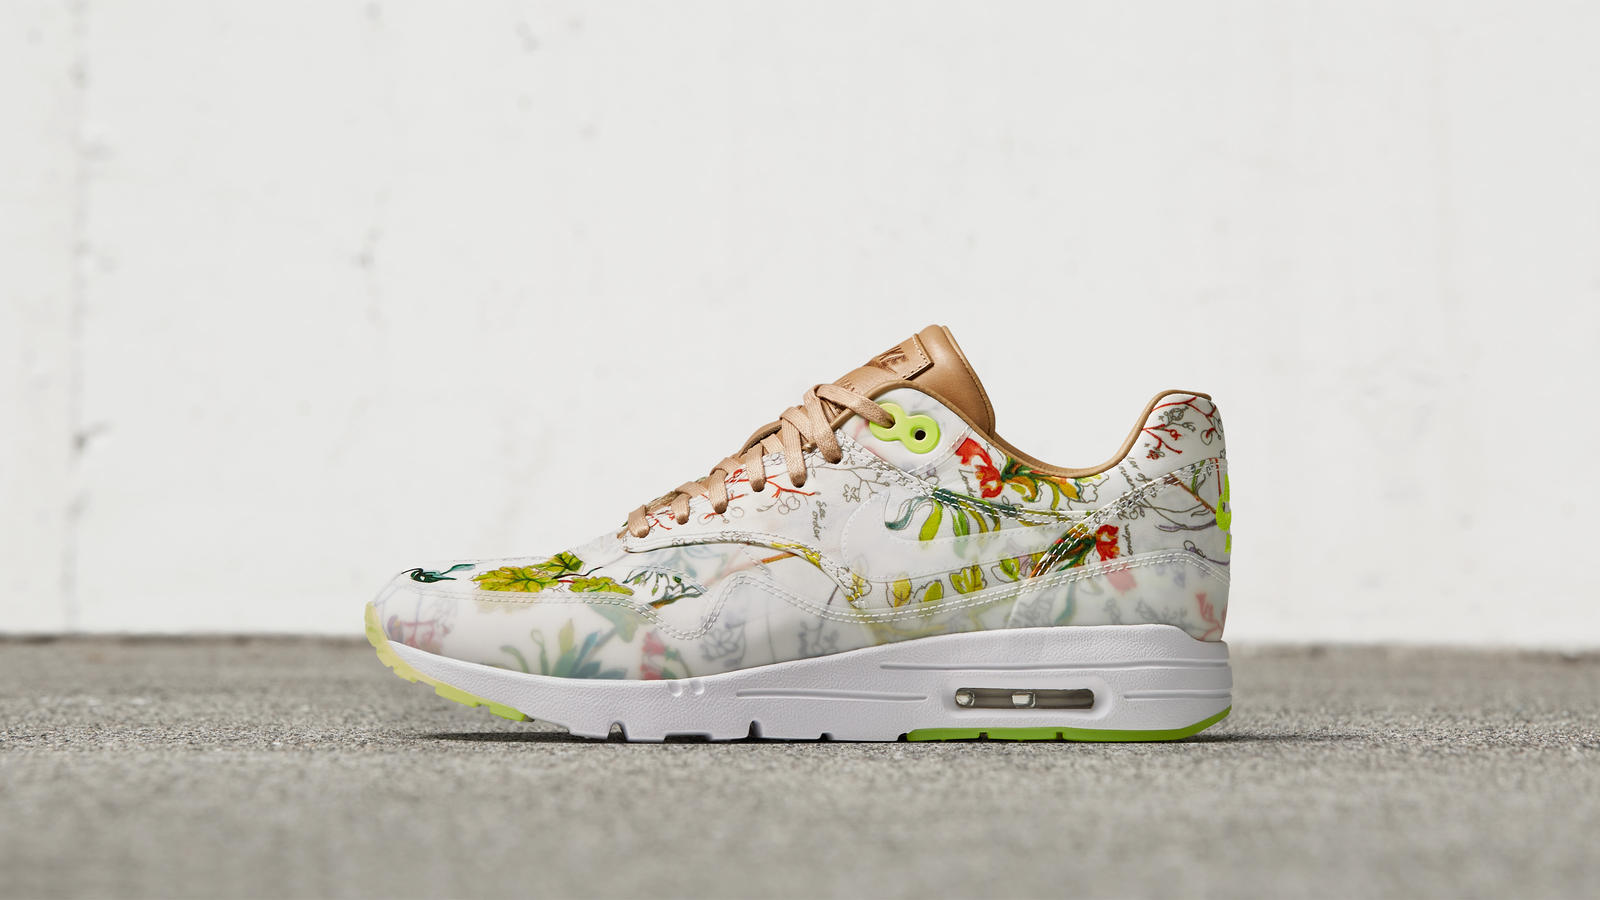 NikeCourt x Liberty Air Max 1